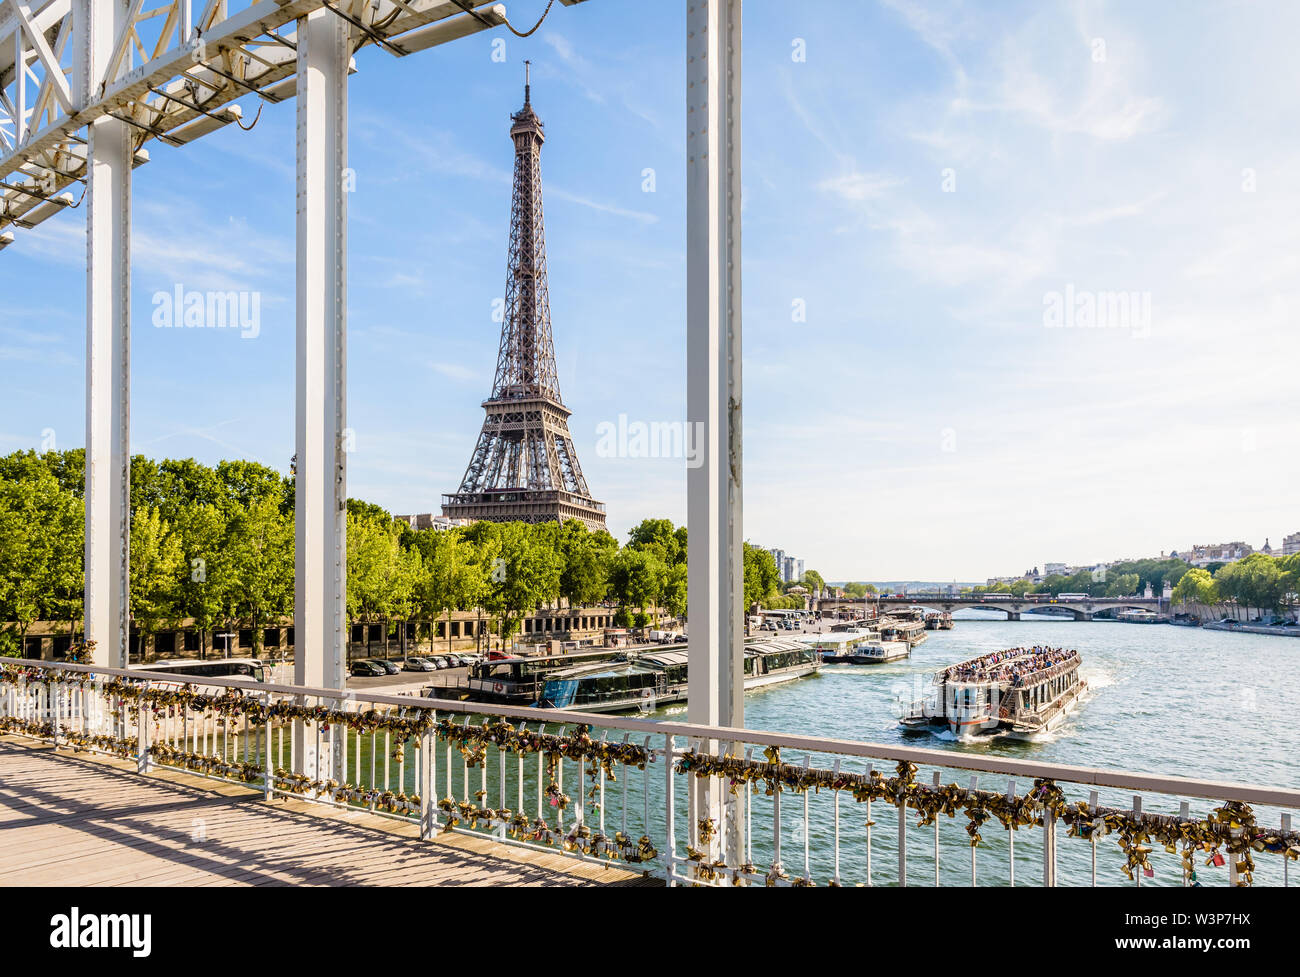 The Eiffel tower in Paris, France, seen from the Debilly footbridge on a sunny summer afternoon with a tourist river boat cruising on the river Seine - Stock Image